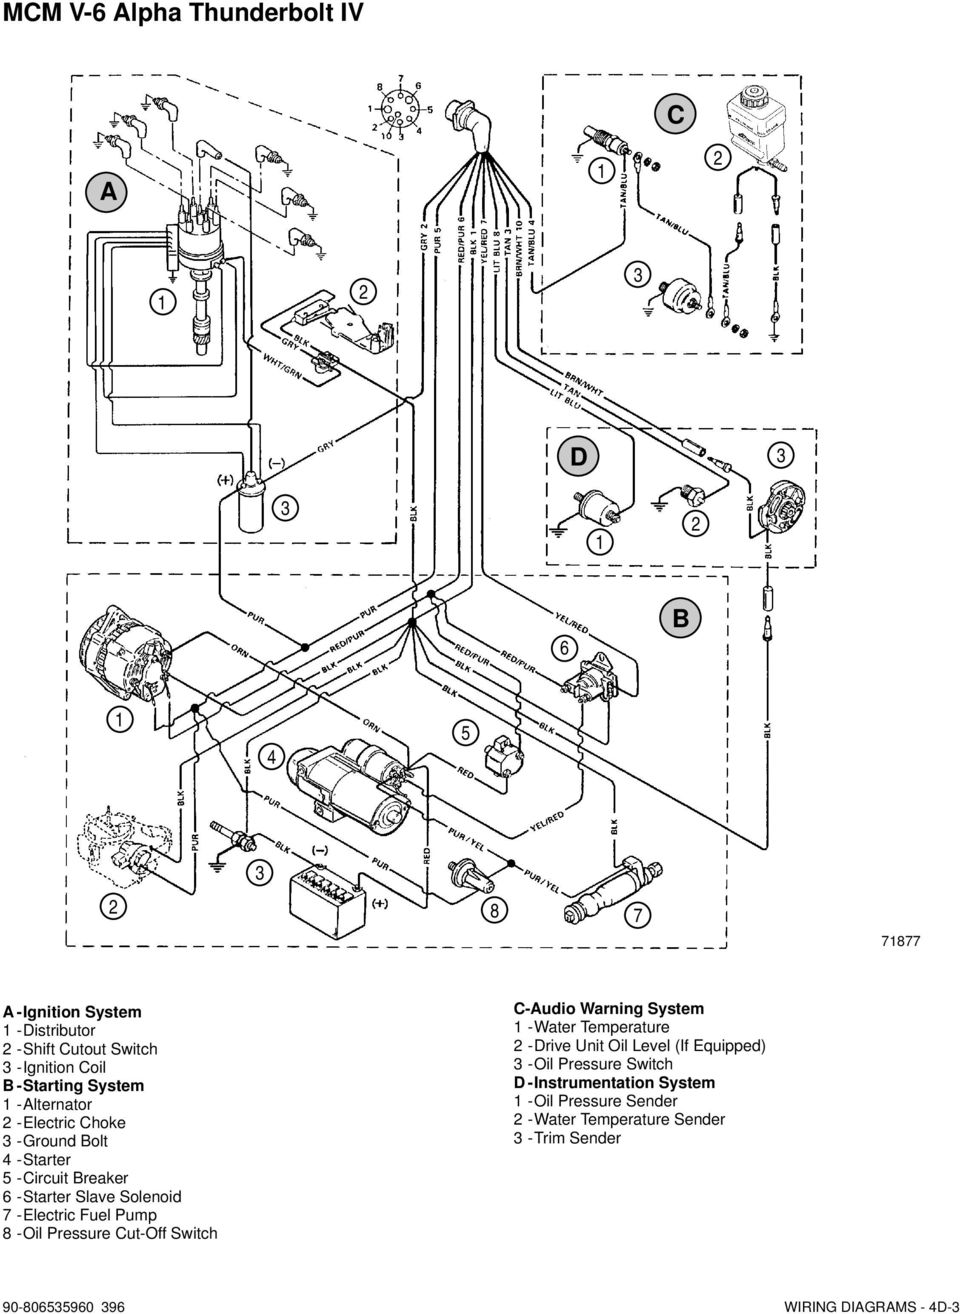 ELECTRICAL SYSTEMS WIRING DIAGRAMS - PDF on fuel gauge wiring diagram, international 8100 fuel diagram, fuel pump circuit diagram, 1998 buick lesabre fuel pump diagram, electric antenna wiring diagram, ford f-350 super duty wiring diagram, fuel injector wiring diagram, fan relay wiring diagram, fuel pump relay diagram, electric fan wiring diagram, backup lights wiring diagram, fuel system wiring diagram, holley fuel pump diagram, electric fuel pumps for carbureted engines, electric clock wiring diagram, automatic choke wiring diagram, gm fuel pump connector diagram, thermostat wiring diagram, 91 ford ranger fuel pump diagram, throttle body wiring diagram,